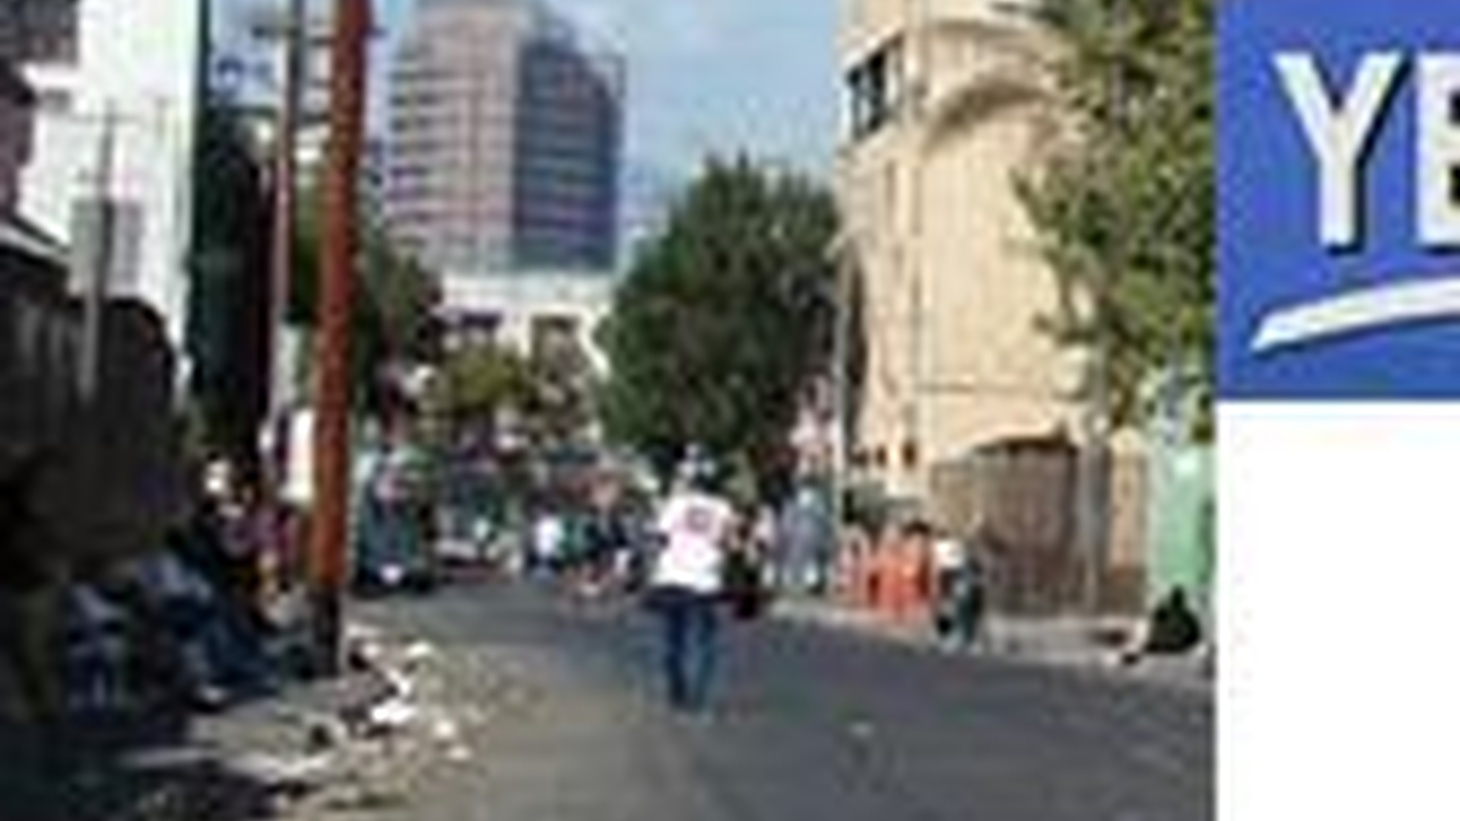 "The LAPD has videotape, but Metropolitan Hospital says it discharged patients where they wanted to go.  Are law enforcement agencies doing the same thing?  Who is scape-goating whom? Plus, Prop 84, another bond issue labeled ""water supply and flood control."" Would it live up to its promise or serve special interests at public expense?"